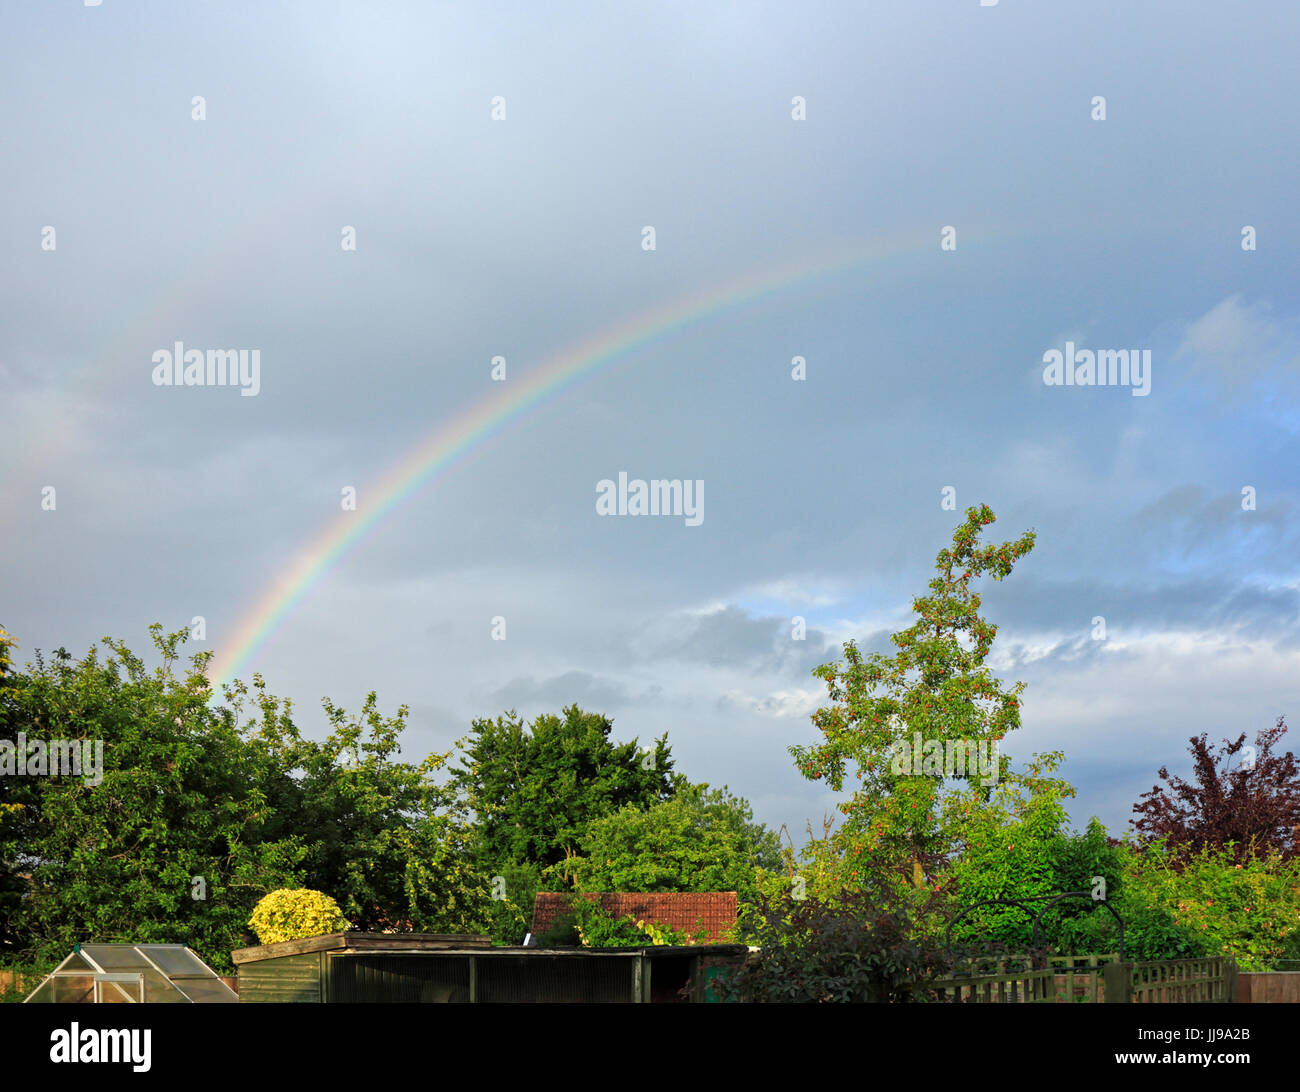 A view of a rainbow over gardens at Hellesdon, Norfolk, England, United Kingdom. - Stock Image